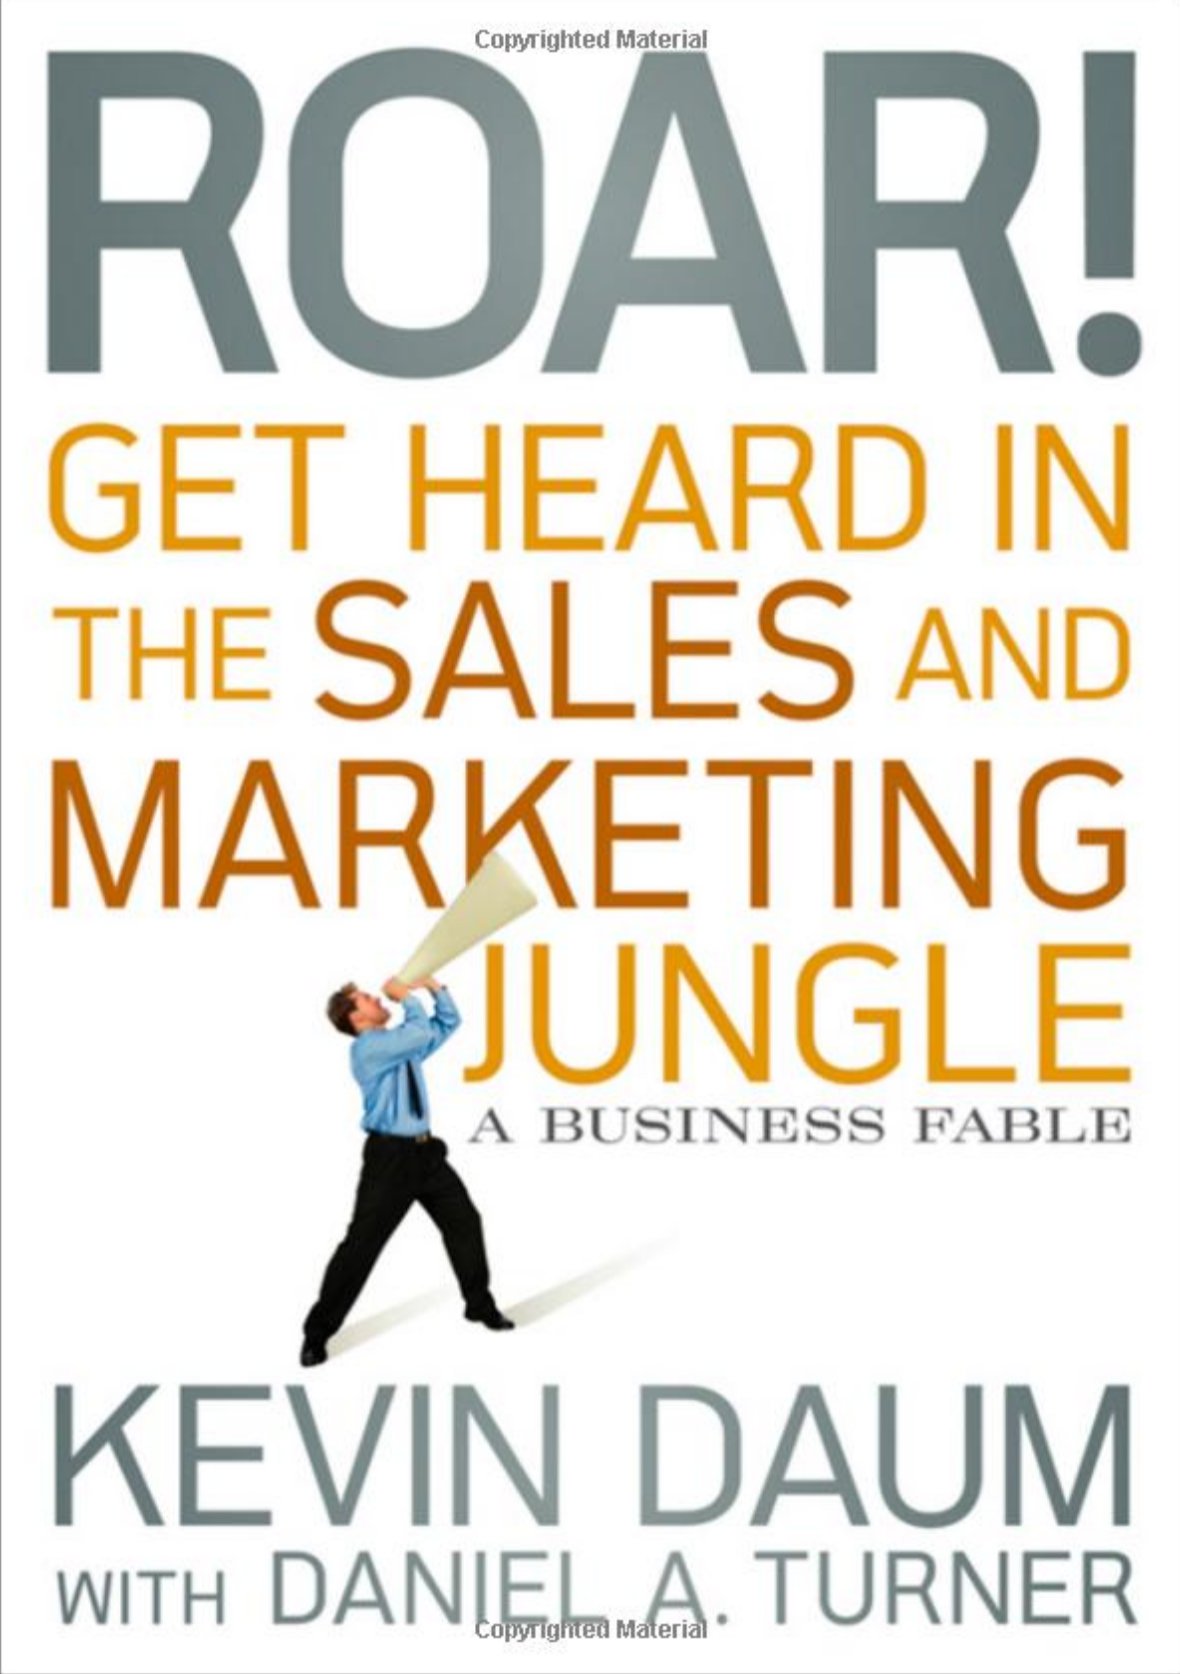 ROAR! Get Heard in the Sales and Marketing Jungle - Kevin Daum